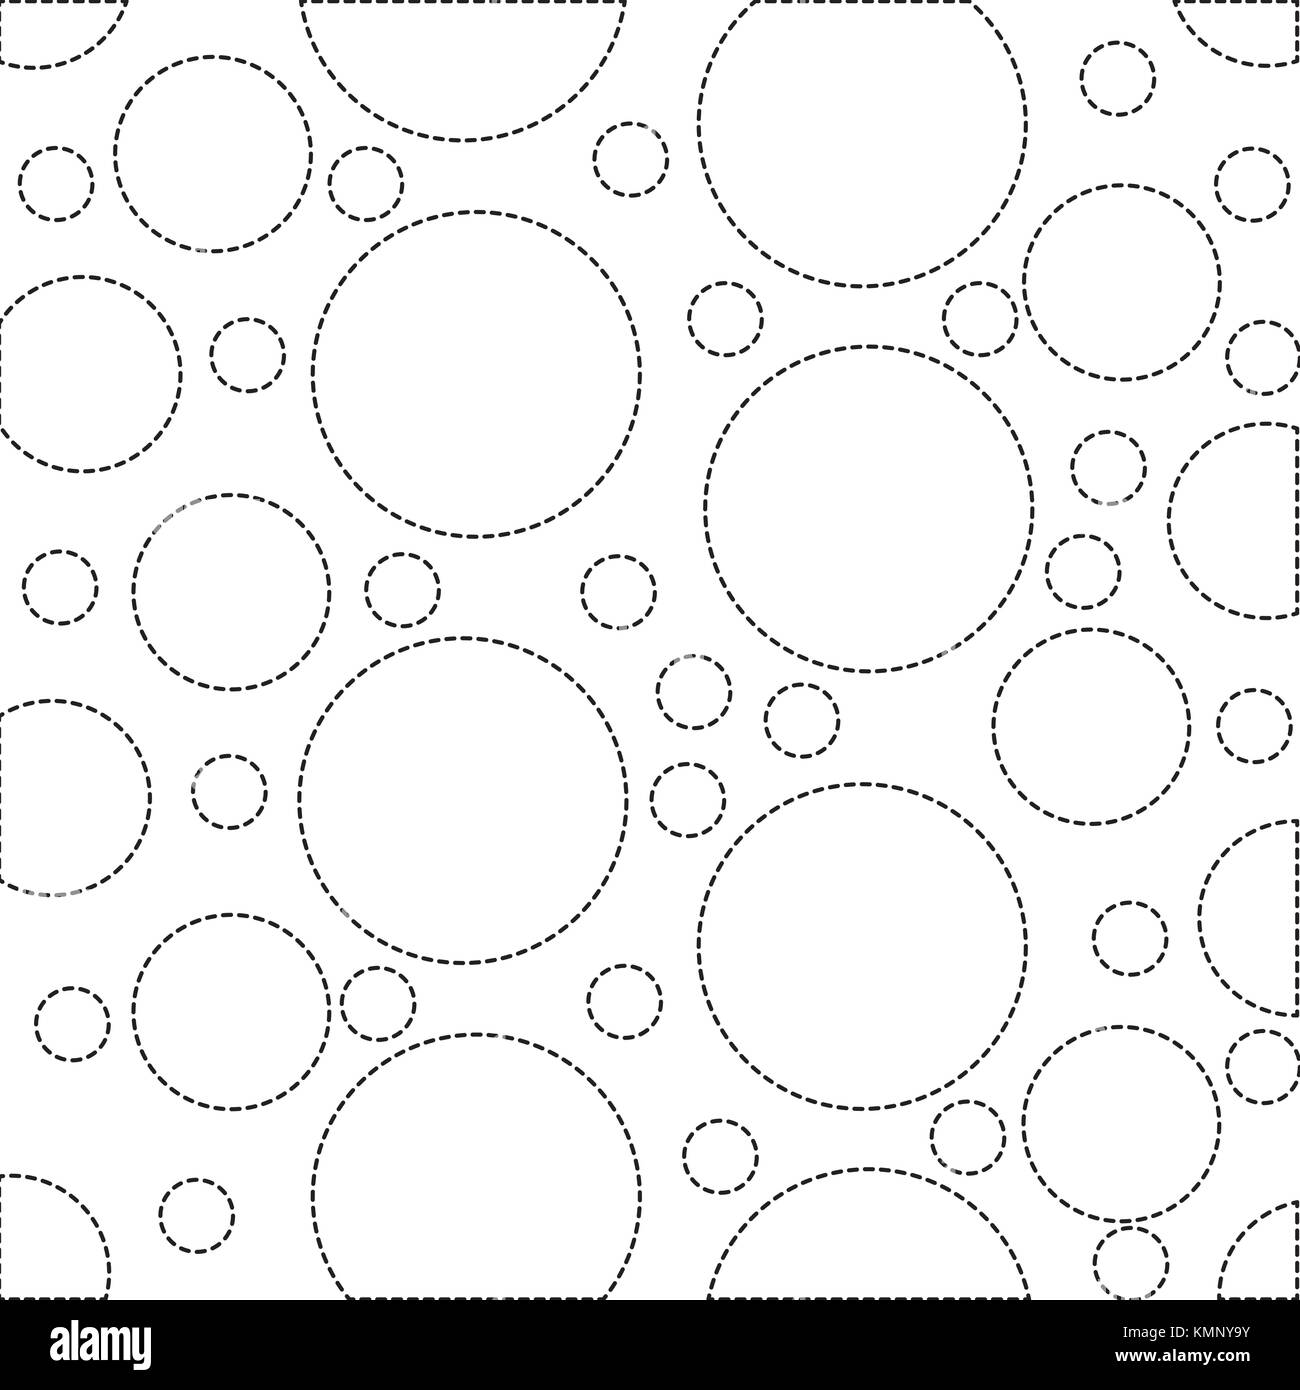 dotted shape circle design memphis style background - Stock Image